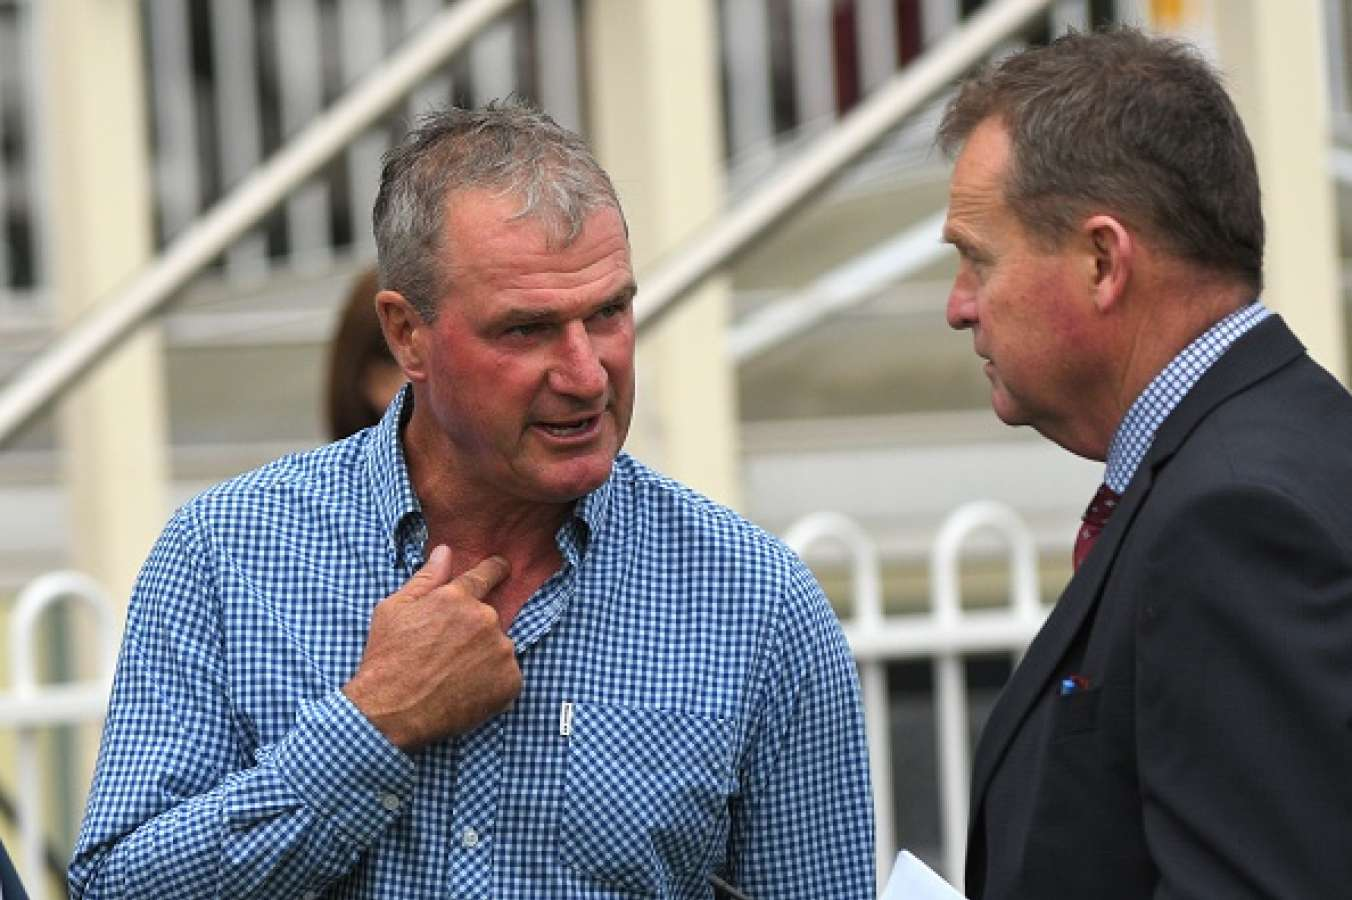 Darren Weir is just one horse trainer, animal cruelty is an industry problem